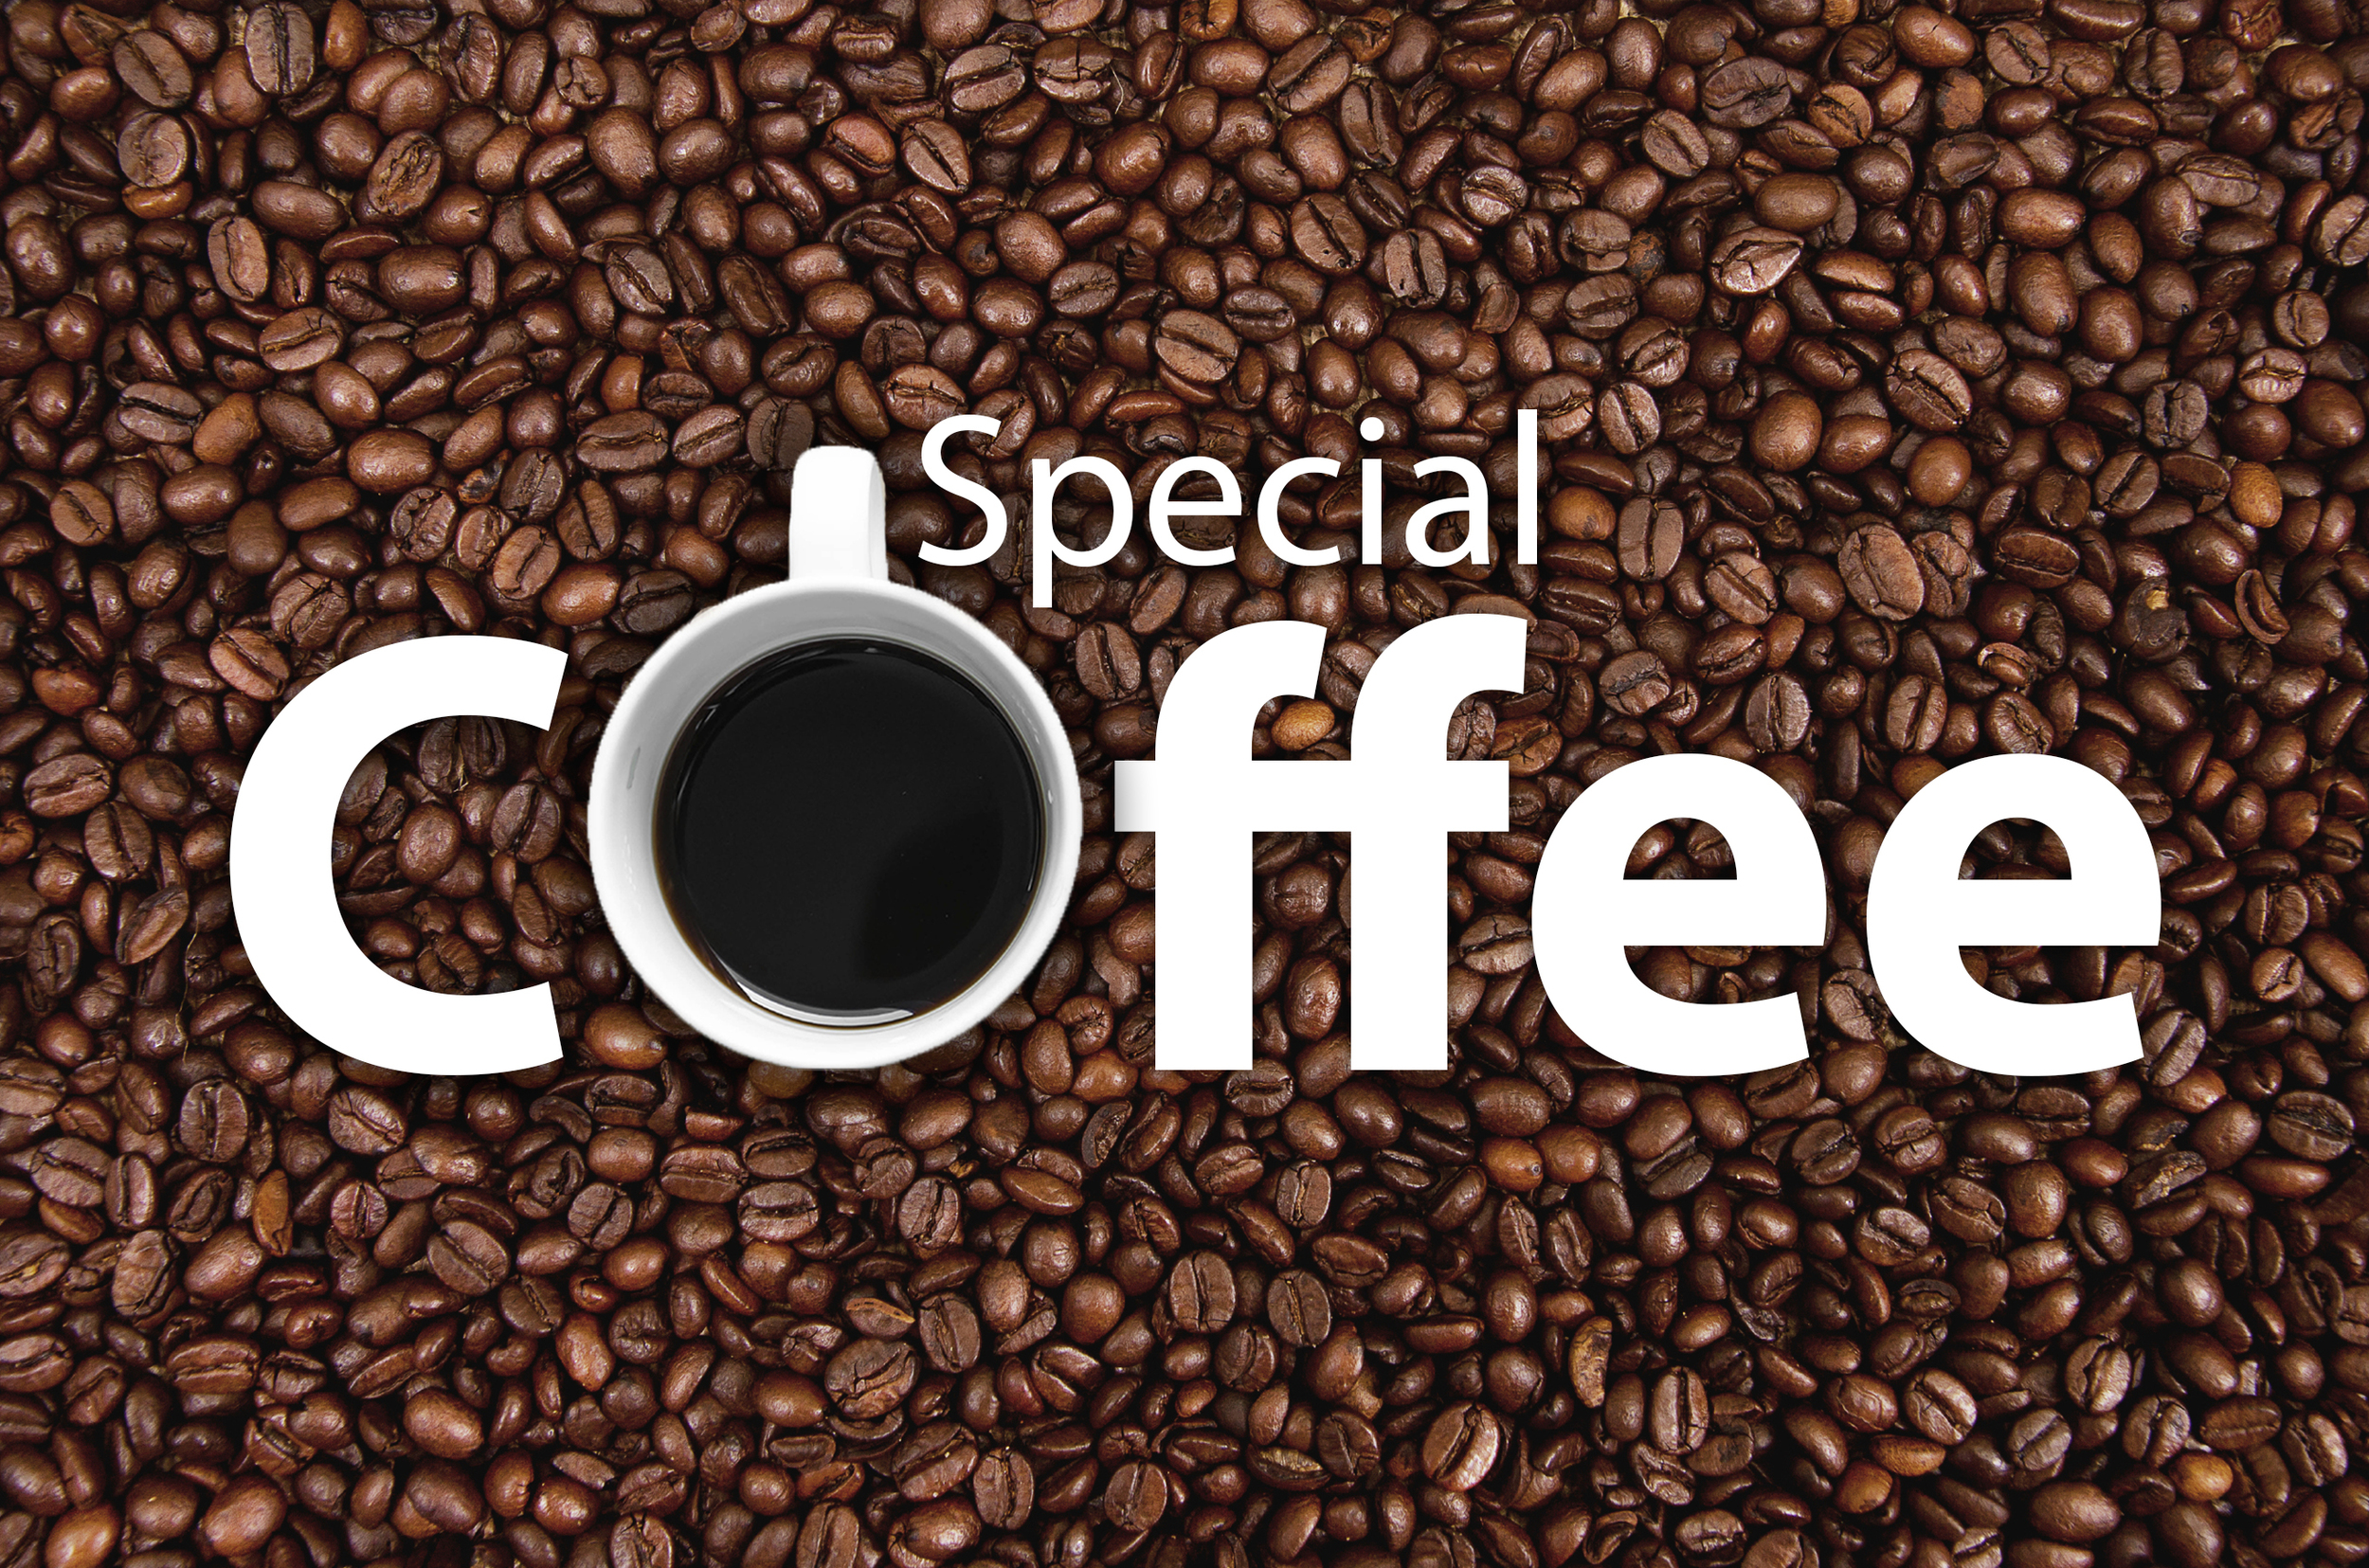 Purchase our Special Coffee